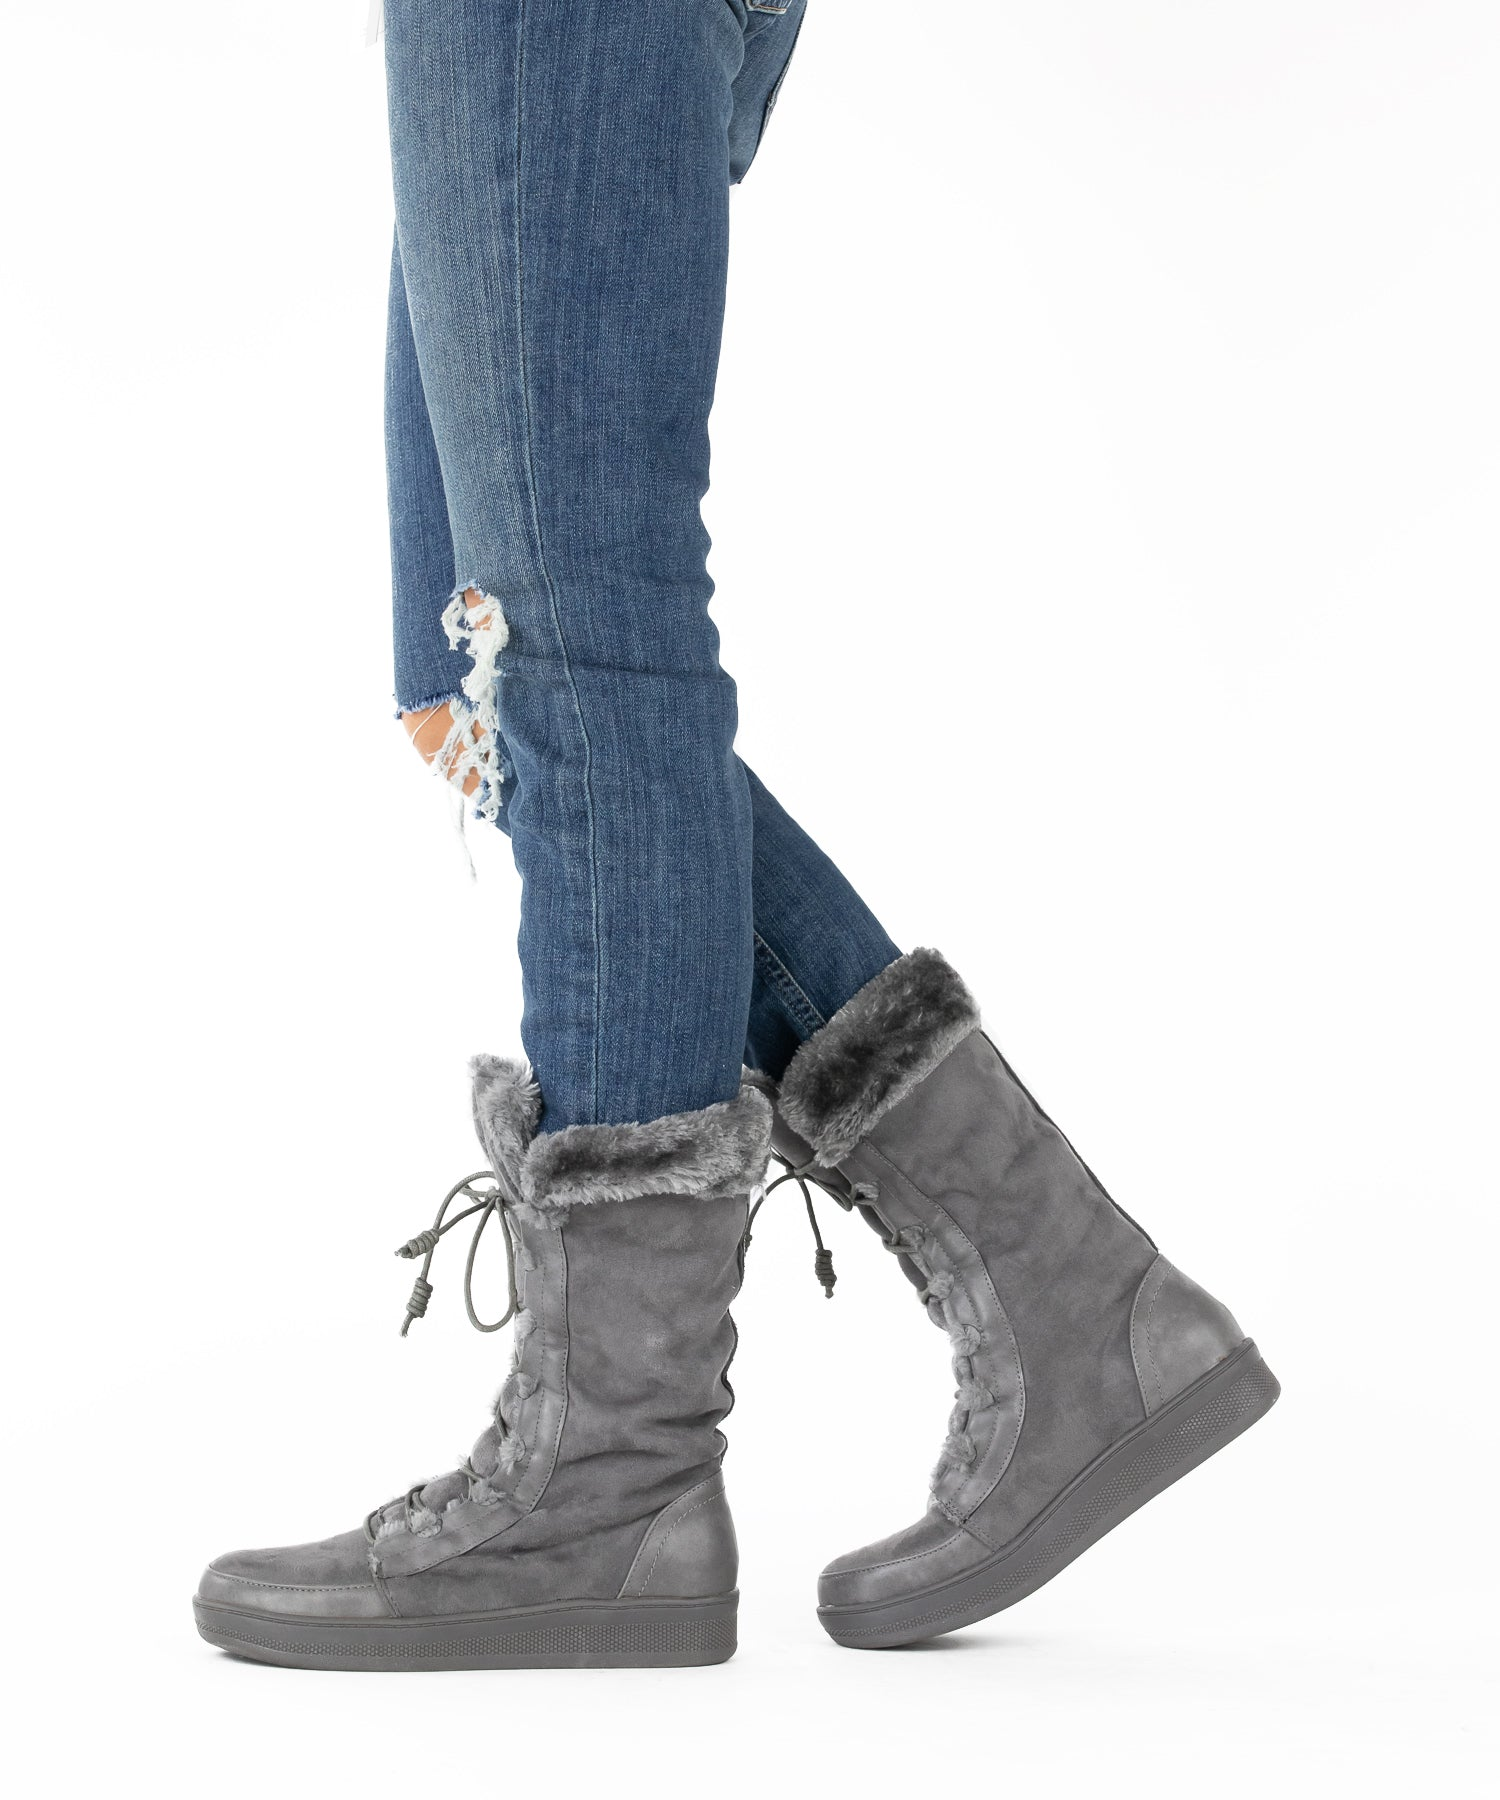 Marshmallow 02 grey Lace-Up Fur Trimmed Après-Ski Boot